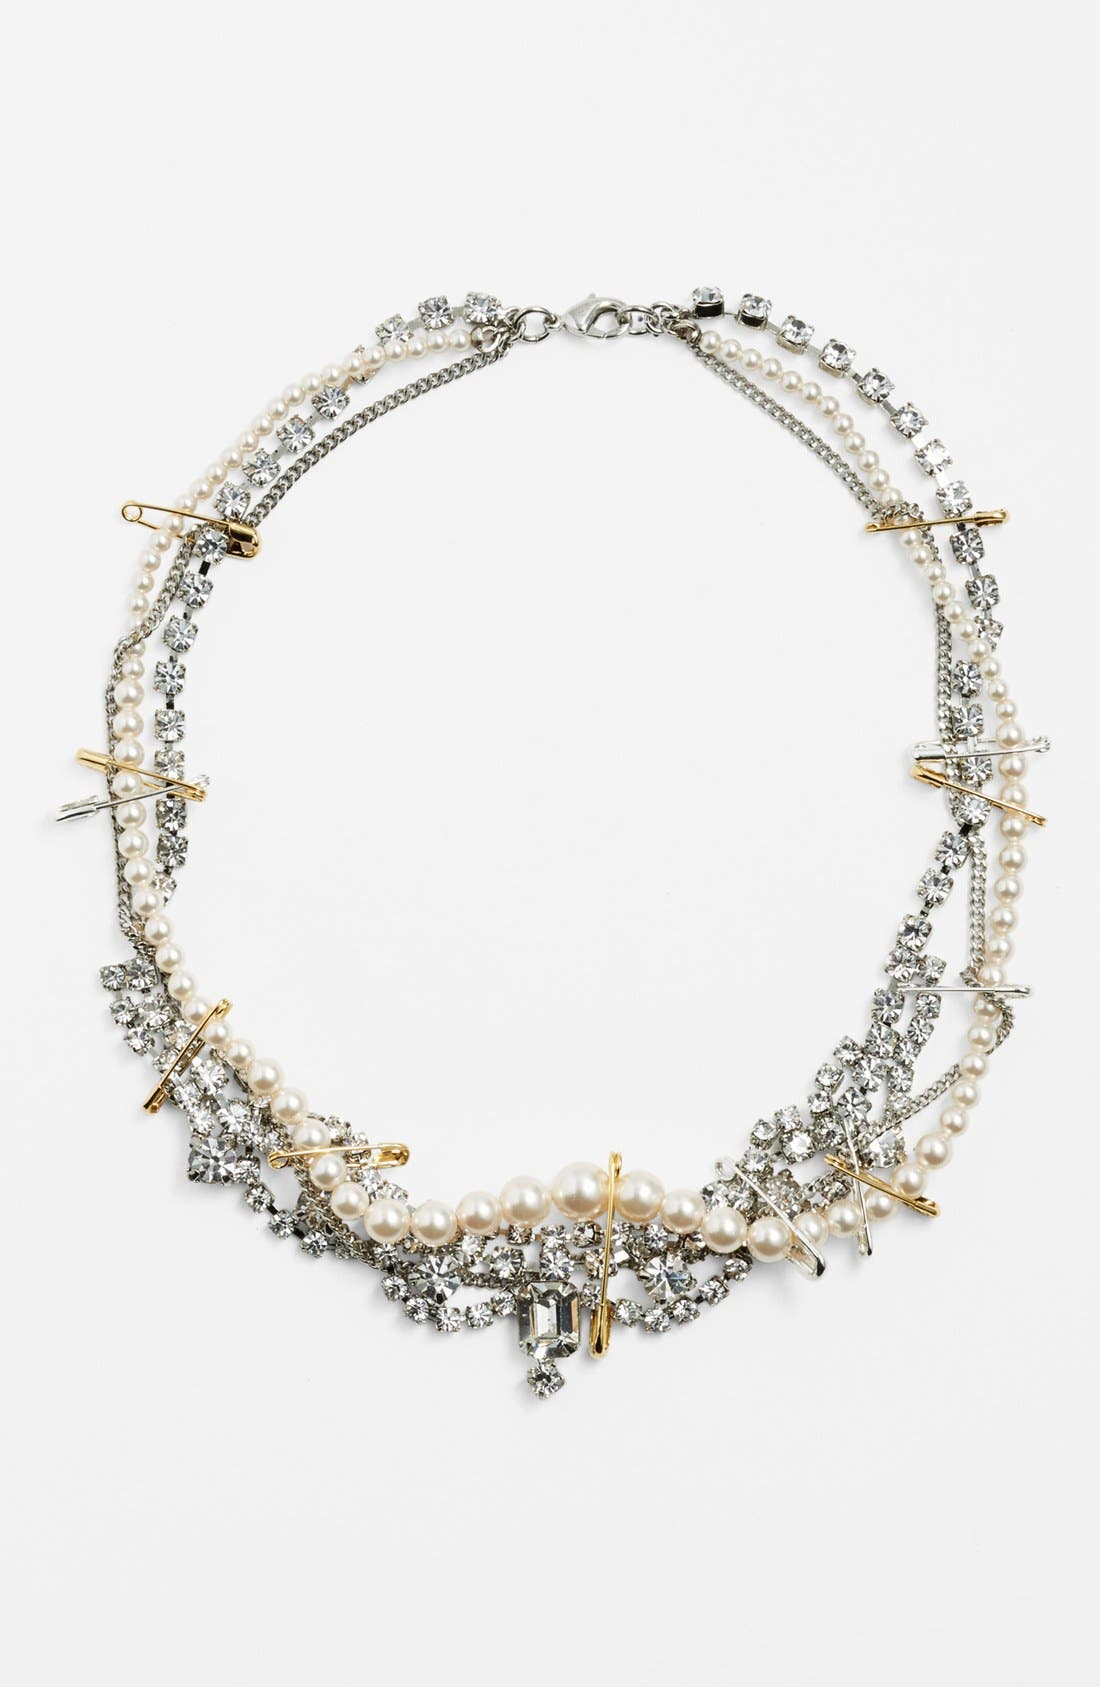 Main Image - Tom Binns 'Pearls in Peril' Necklace